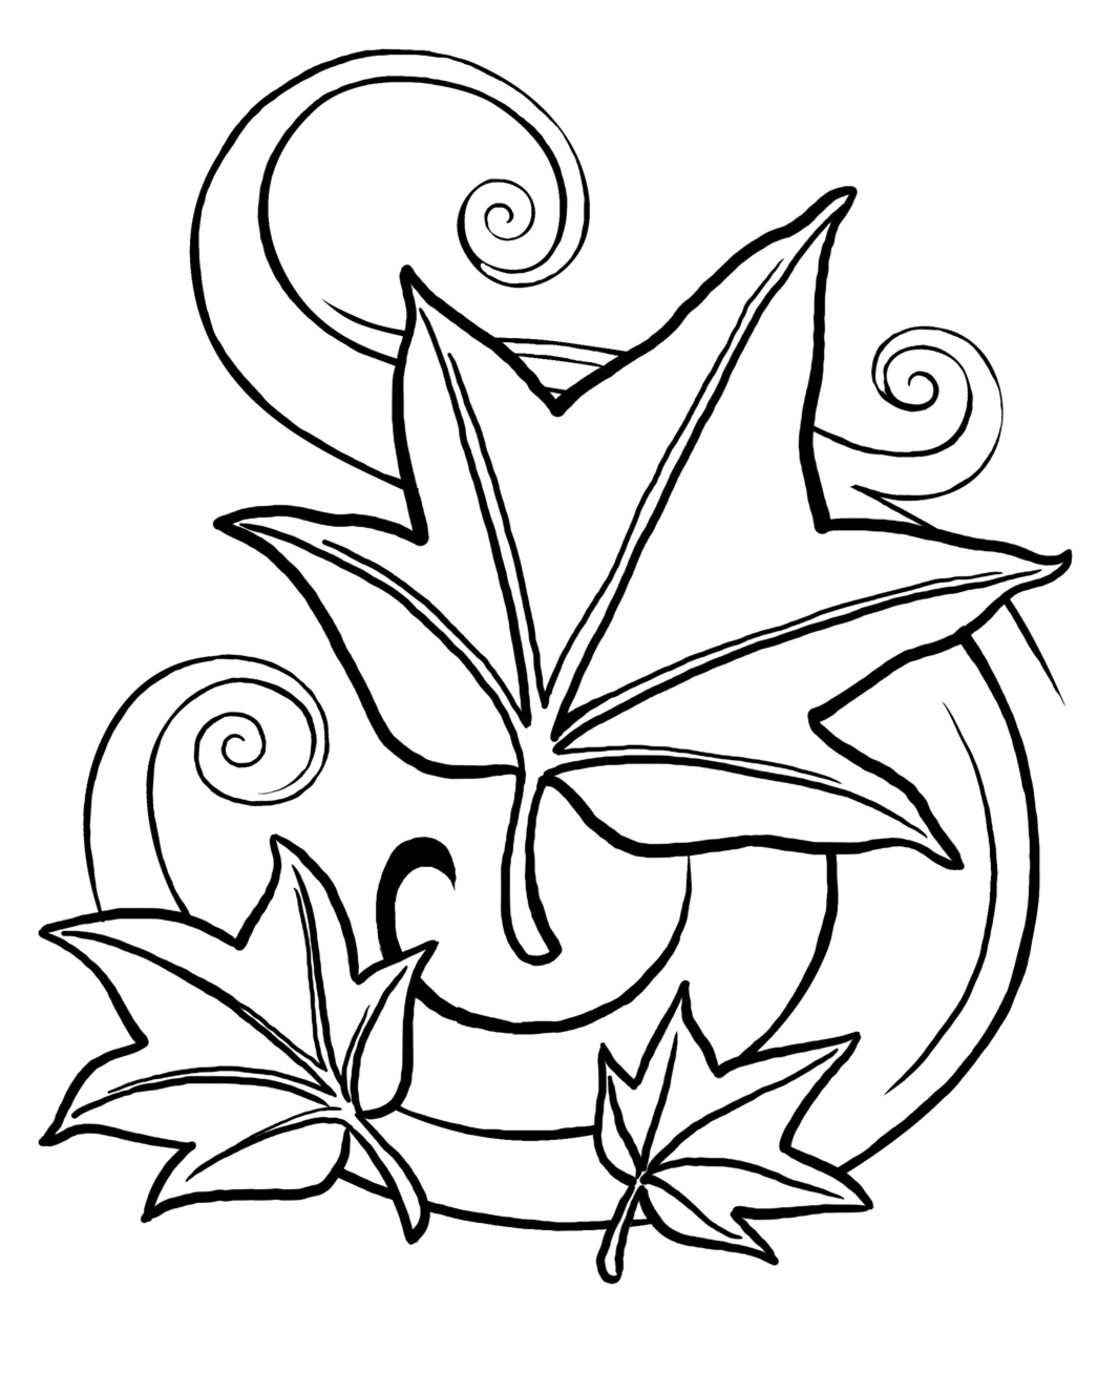 marijuana leaf coloring pages weed coloring pages tattoo leaves free printable pages marijuana leaf coloring